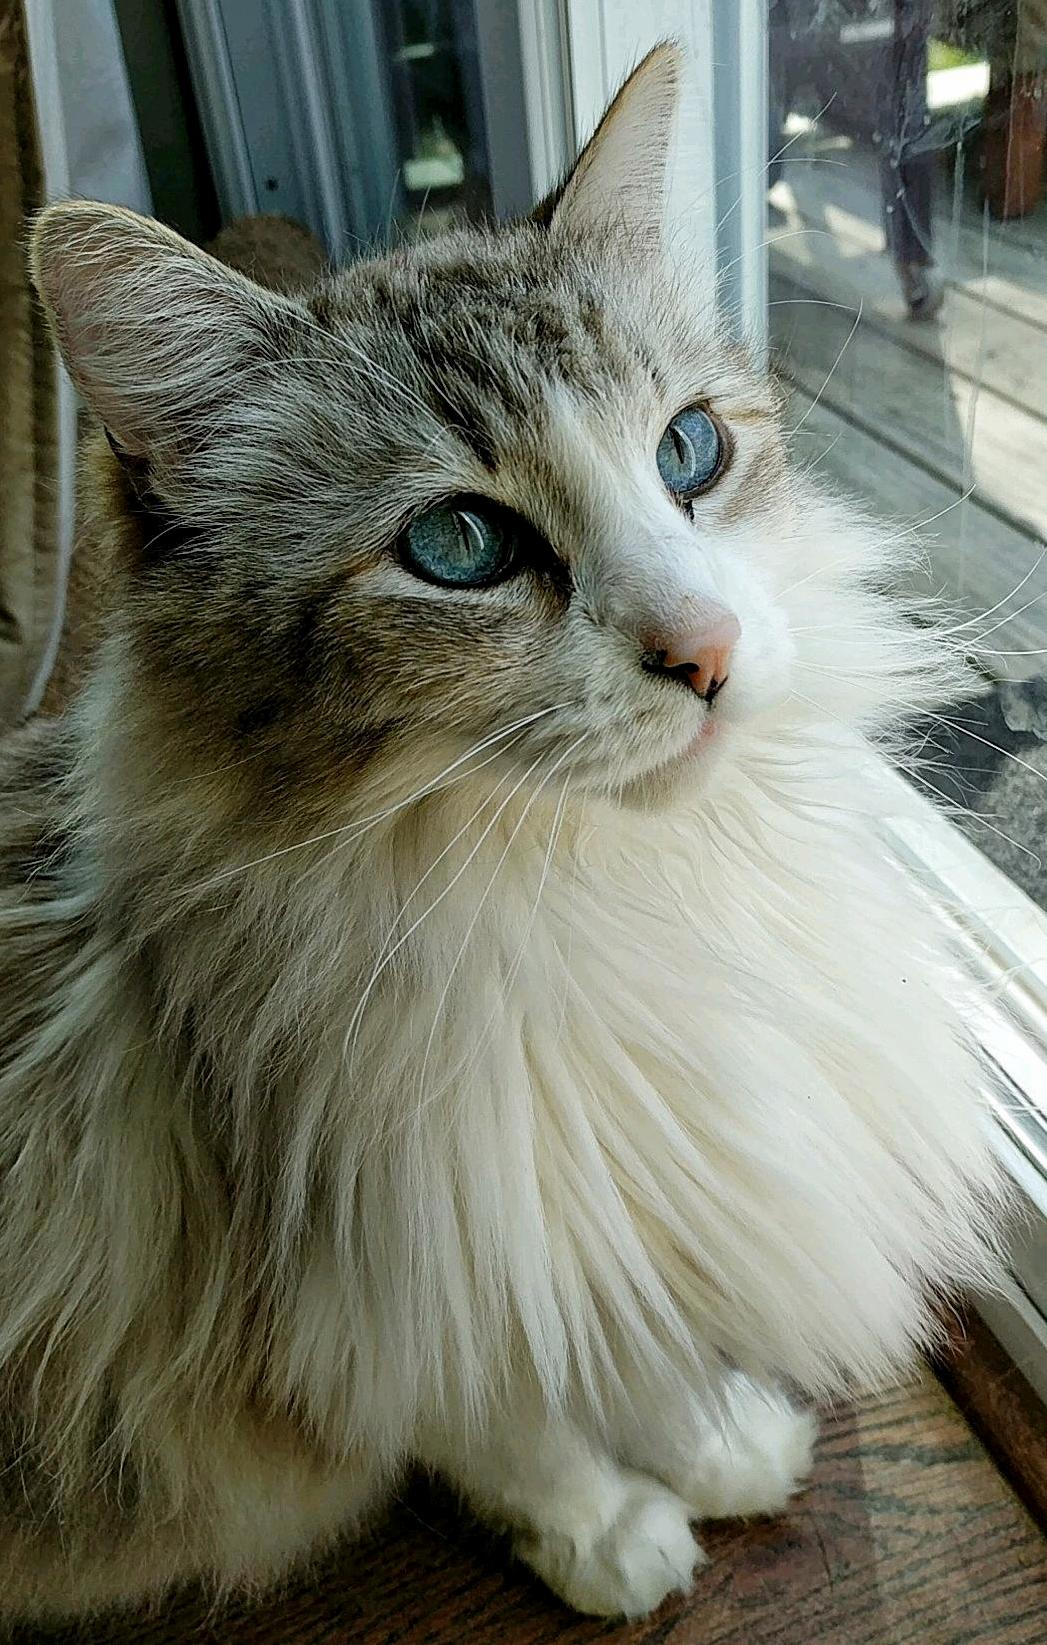 His name is fluffy.